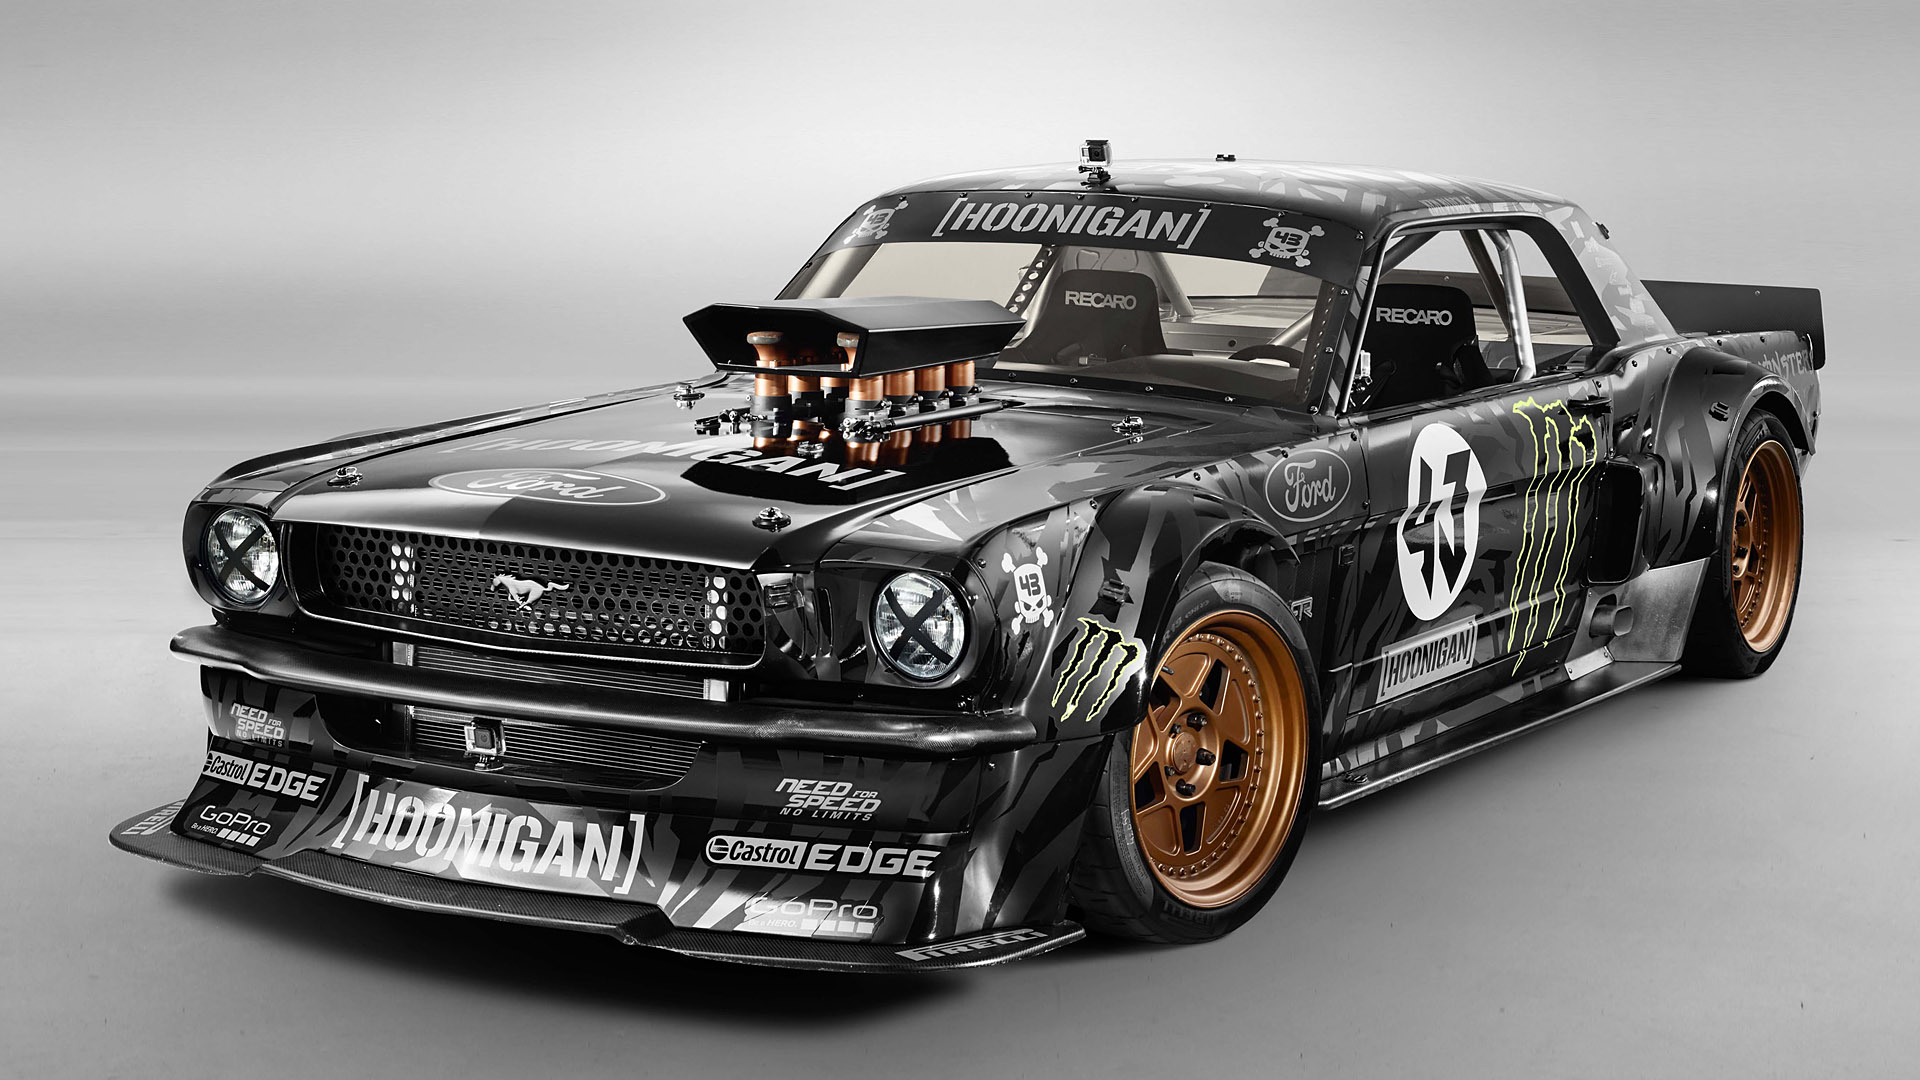 2014 Hoonigan Mustang RTR by Ken Block Wallpapers 1920x1080